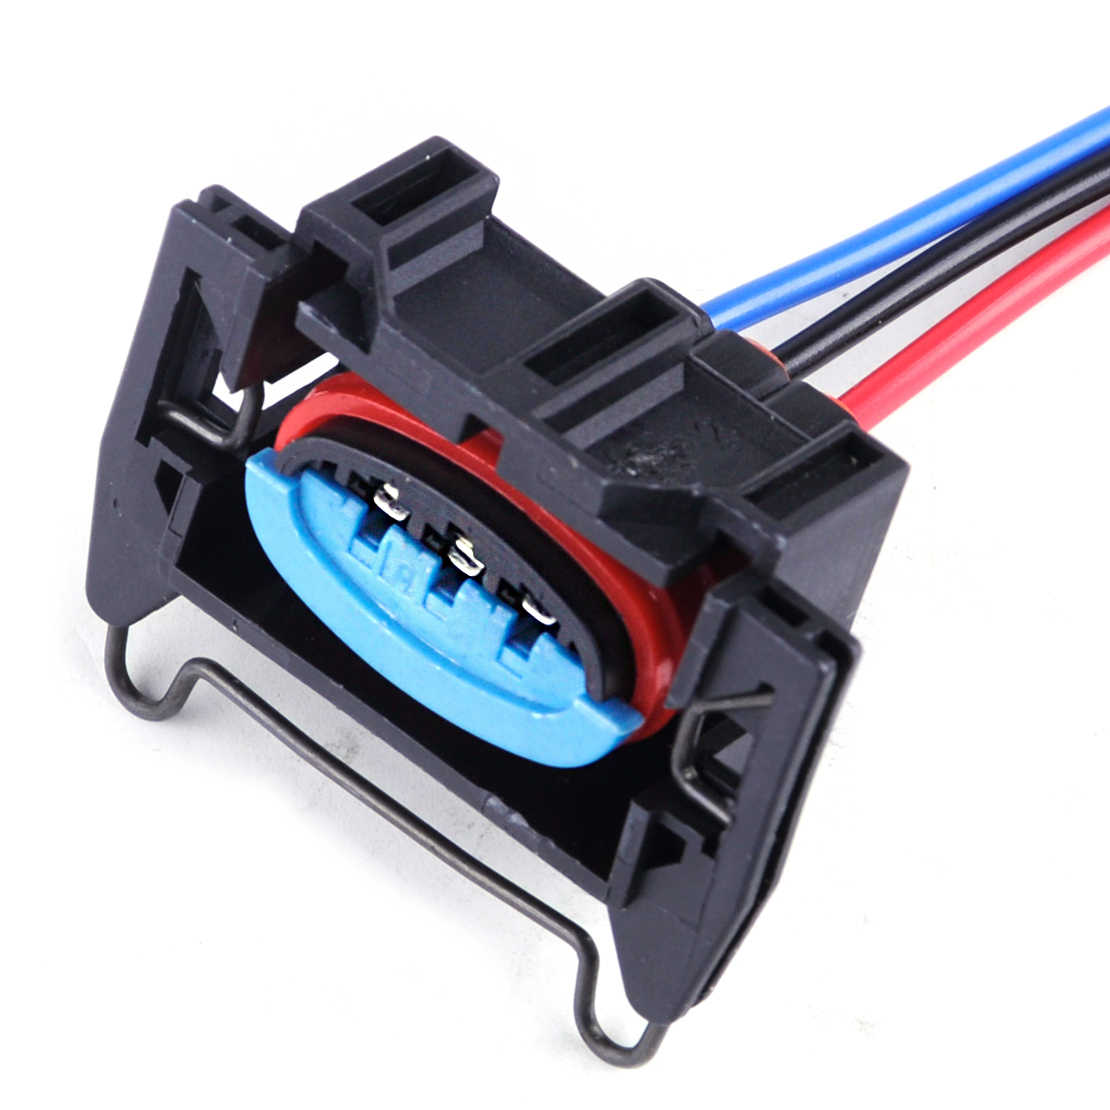 beler ignition coil pack wiring harness connector fit for ford mazda 645 302 3u2z14s411tna 1p1727 [ 1110 x 1110 Pixel ]